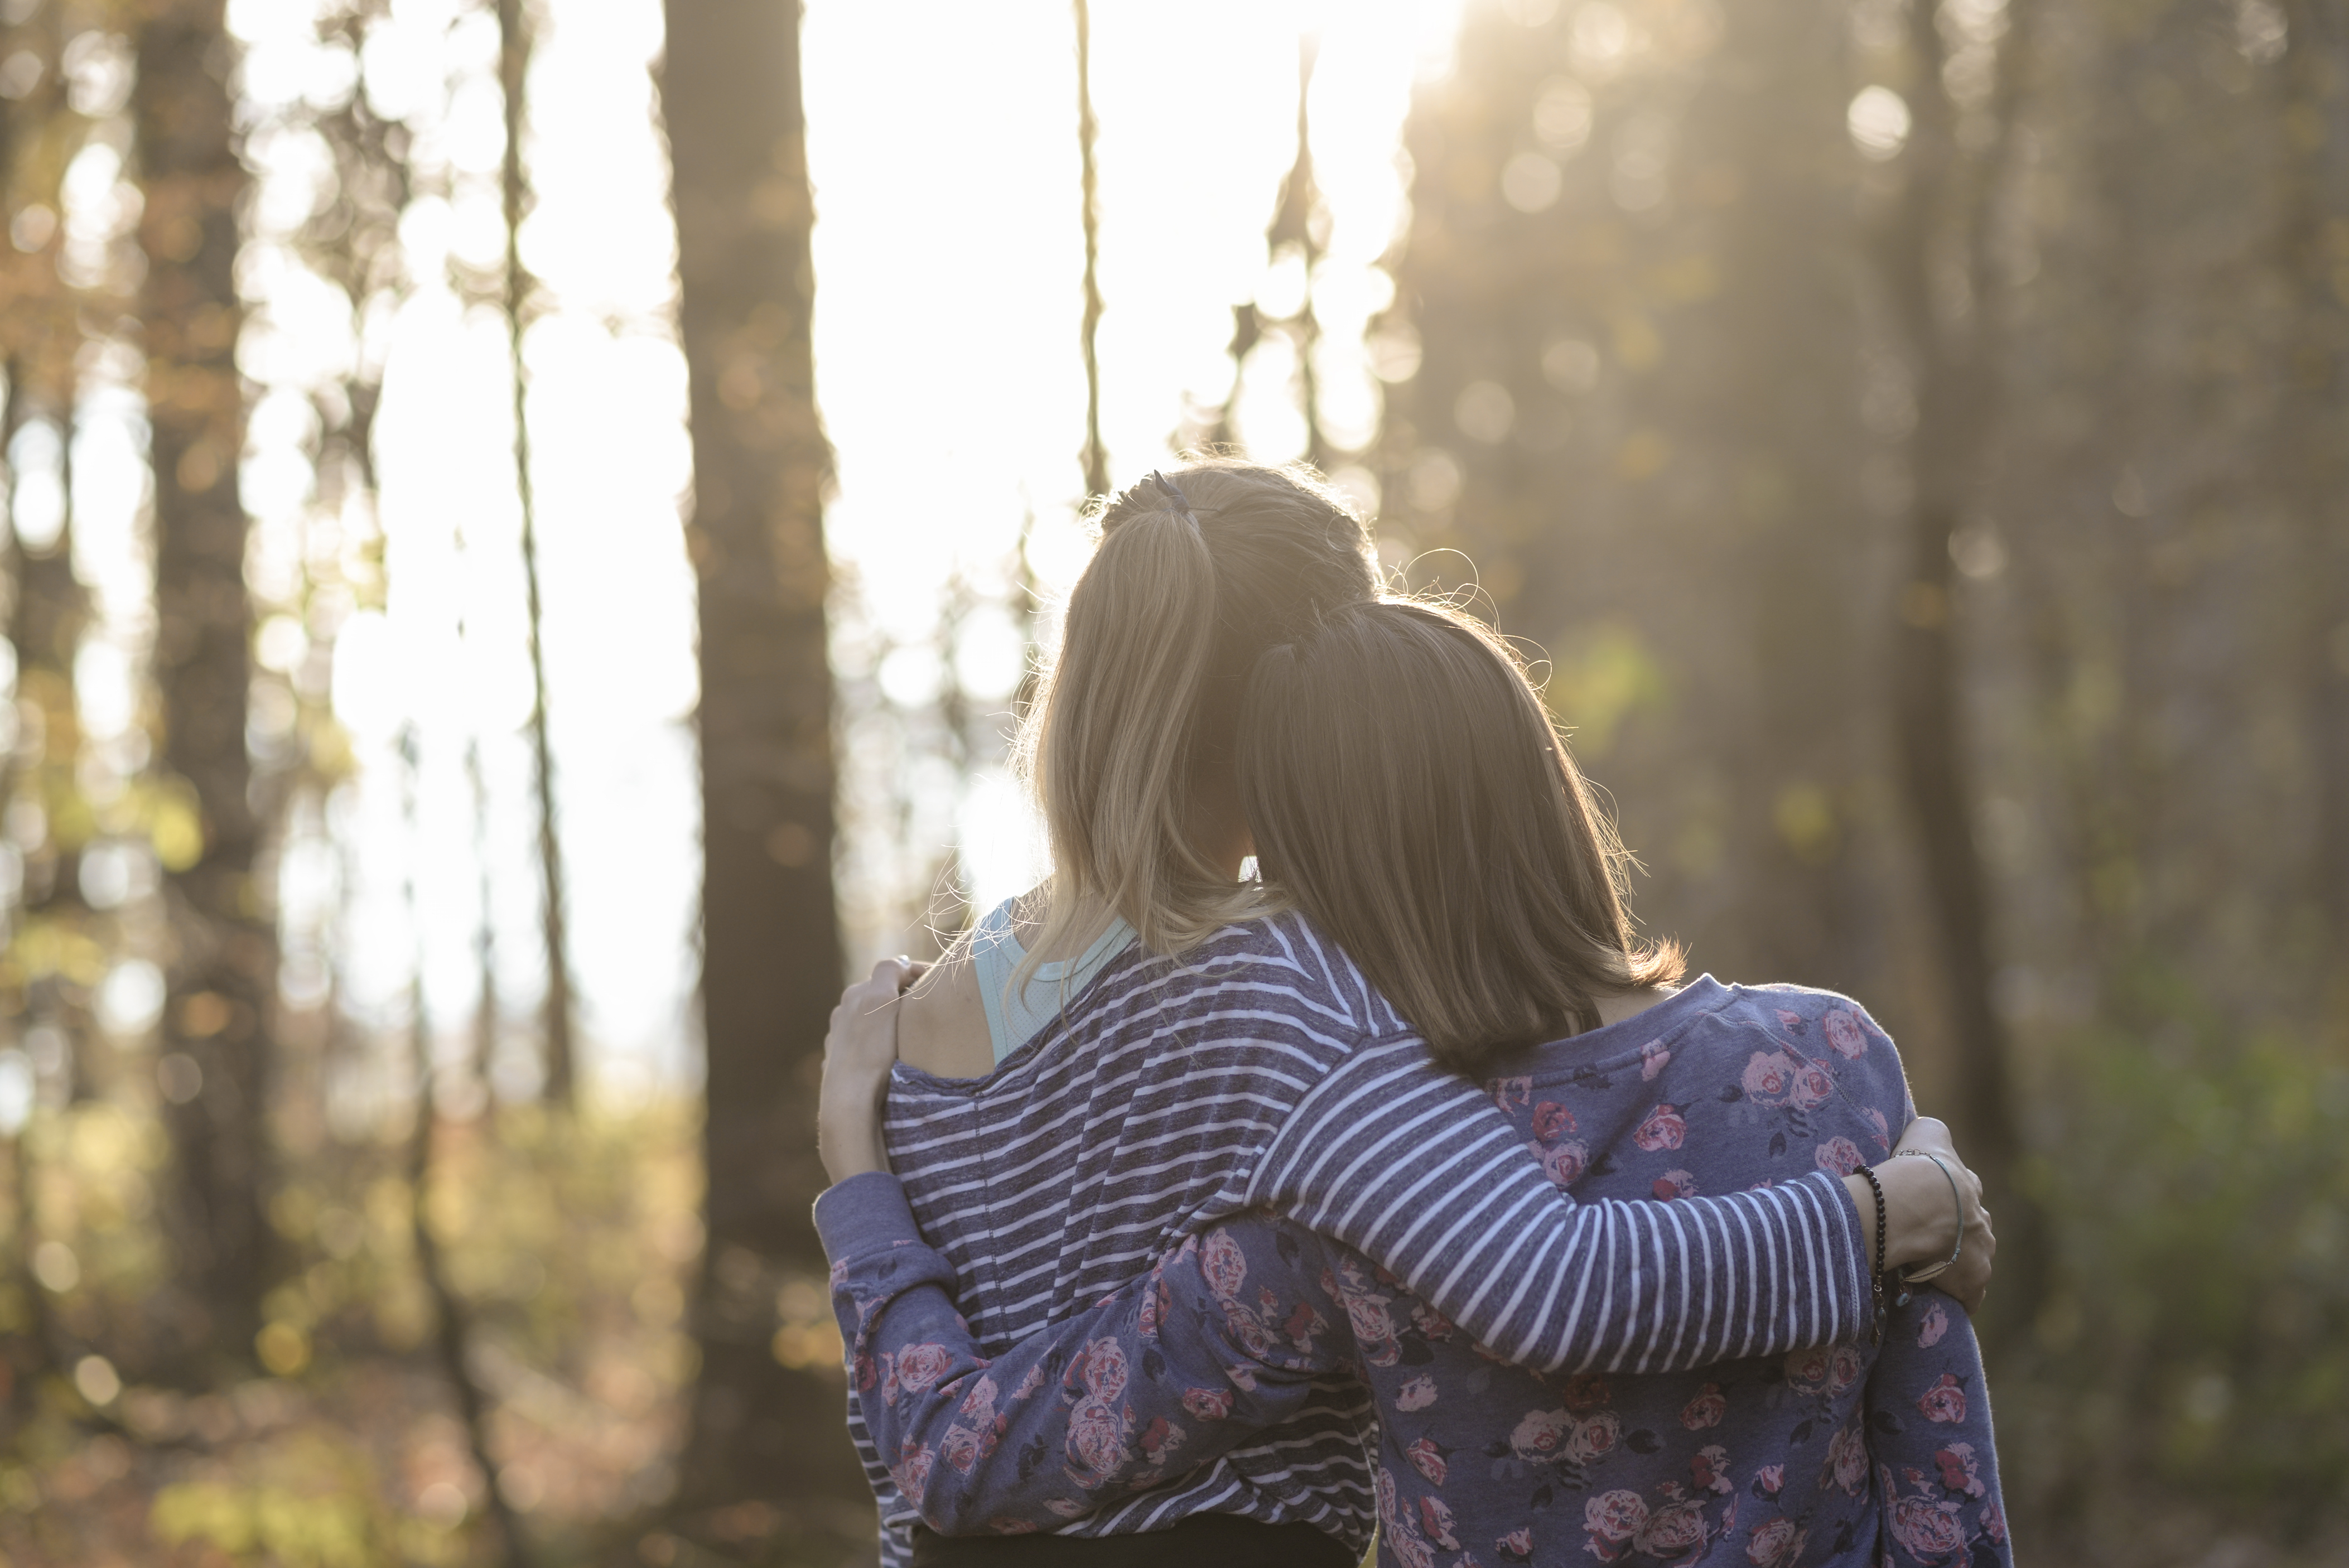 Two women walking in a forest with their arms around one another.